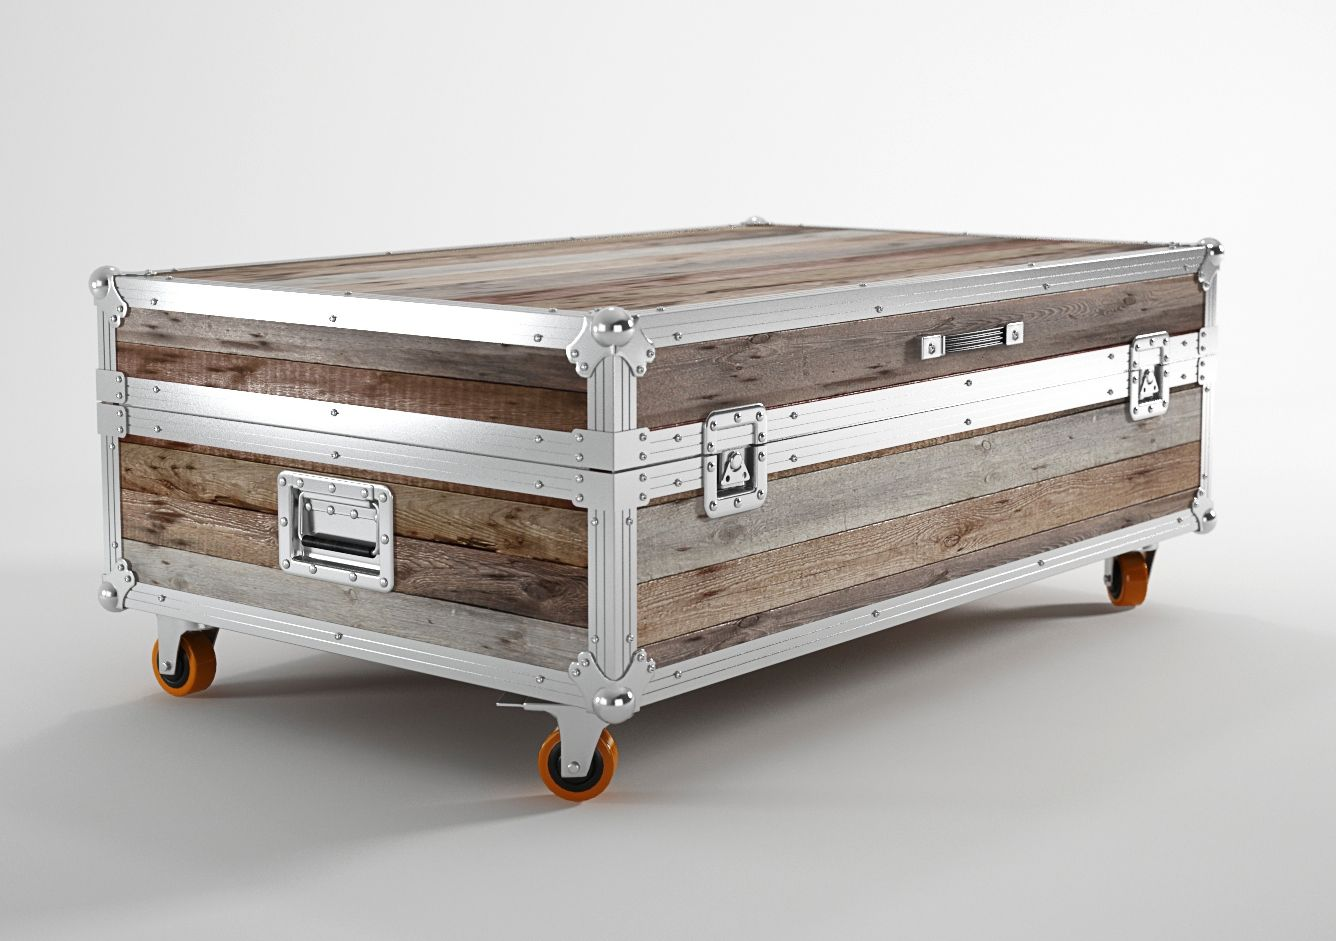 Storage Table On Wheels Roadie Trunk Coffee Table Interior Design Coffee Table